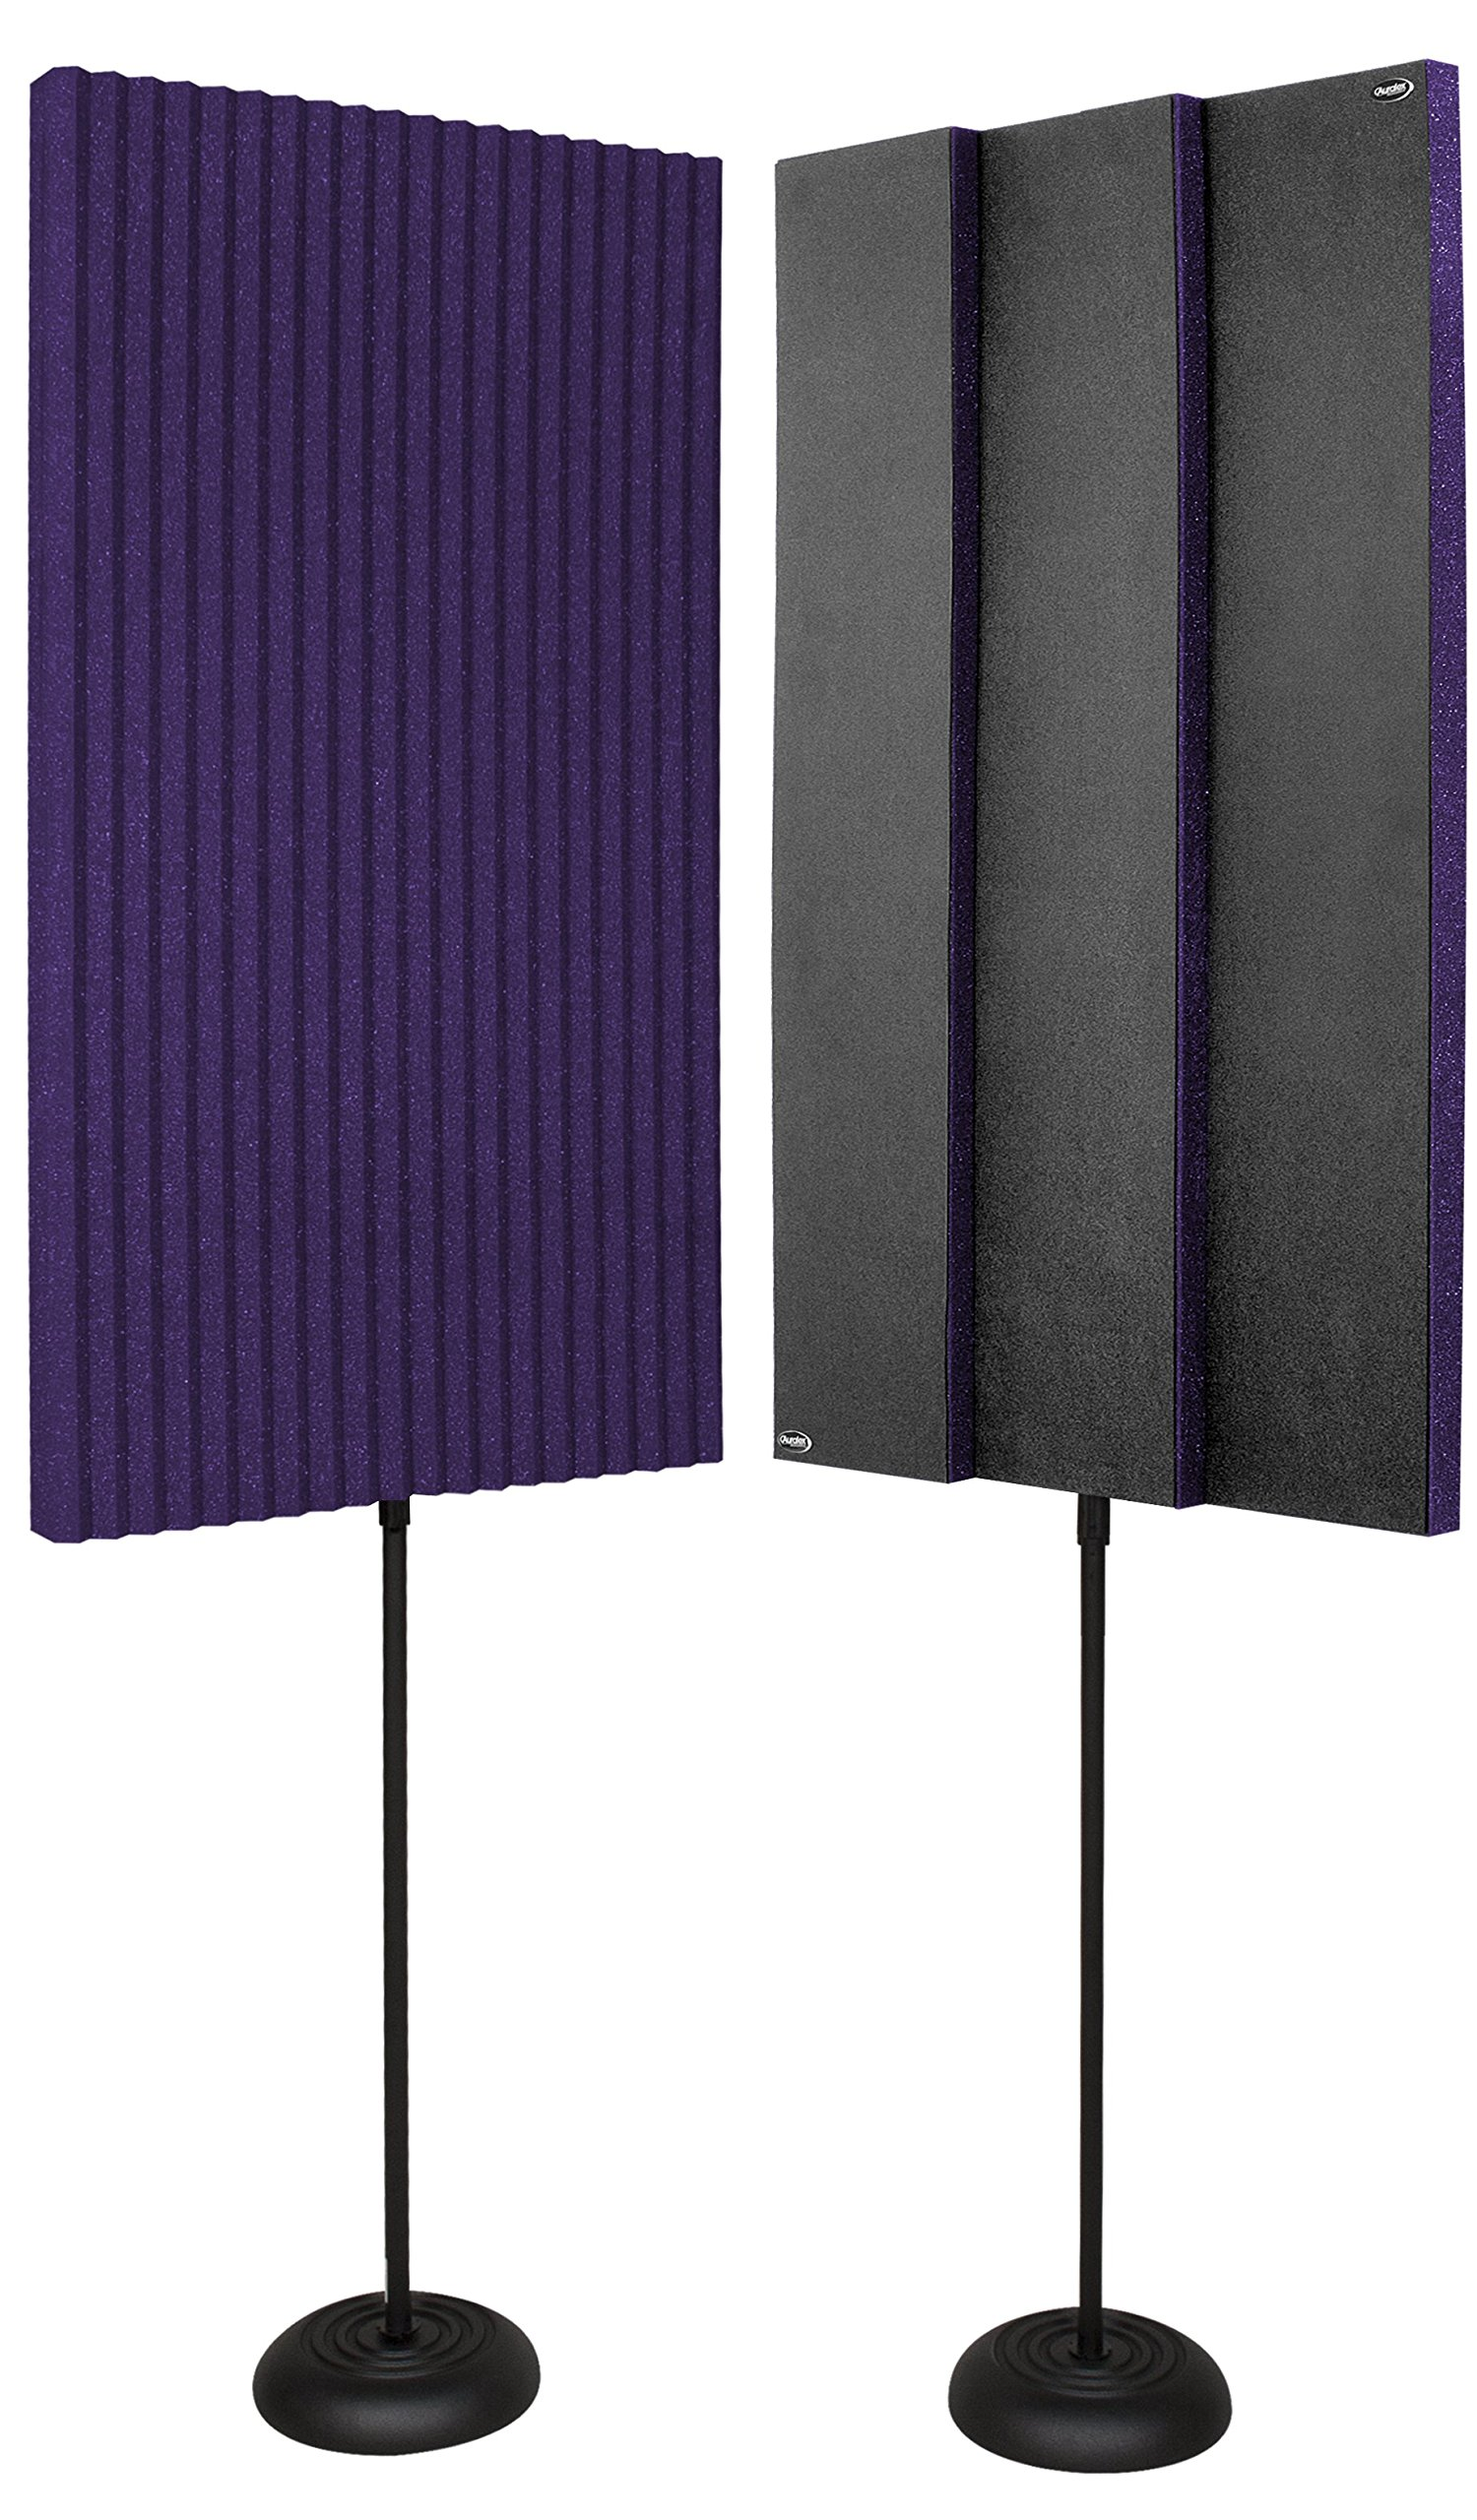 Auralex Acoustics Portable Acoustic Treatment Panels for Podcasting, Voiceovers, Video Blogging and Educational, Purple 2x4 Adjustable Stand (PROMAX_V2PUR